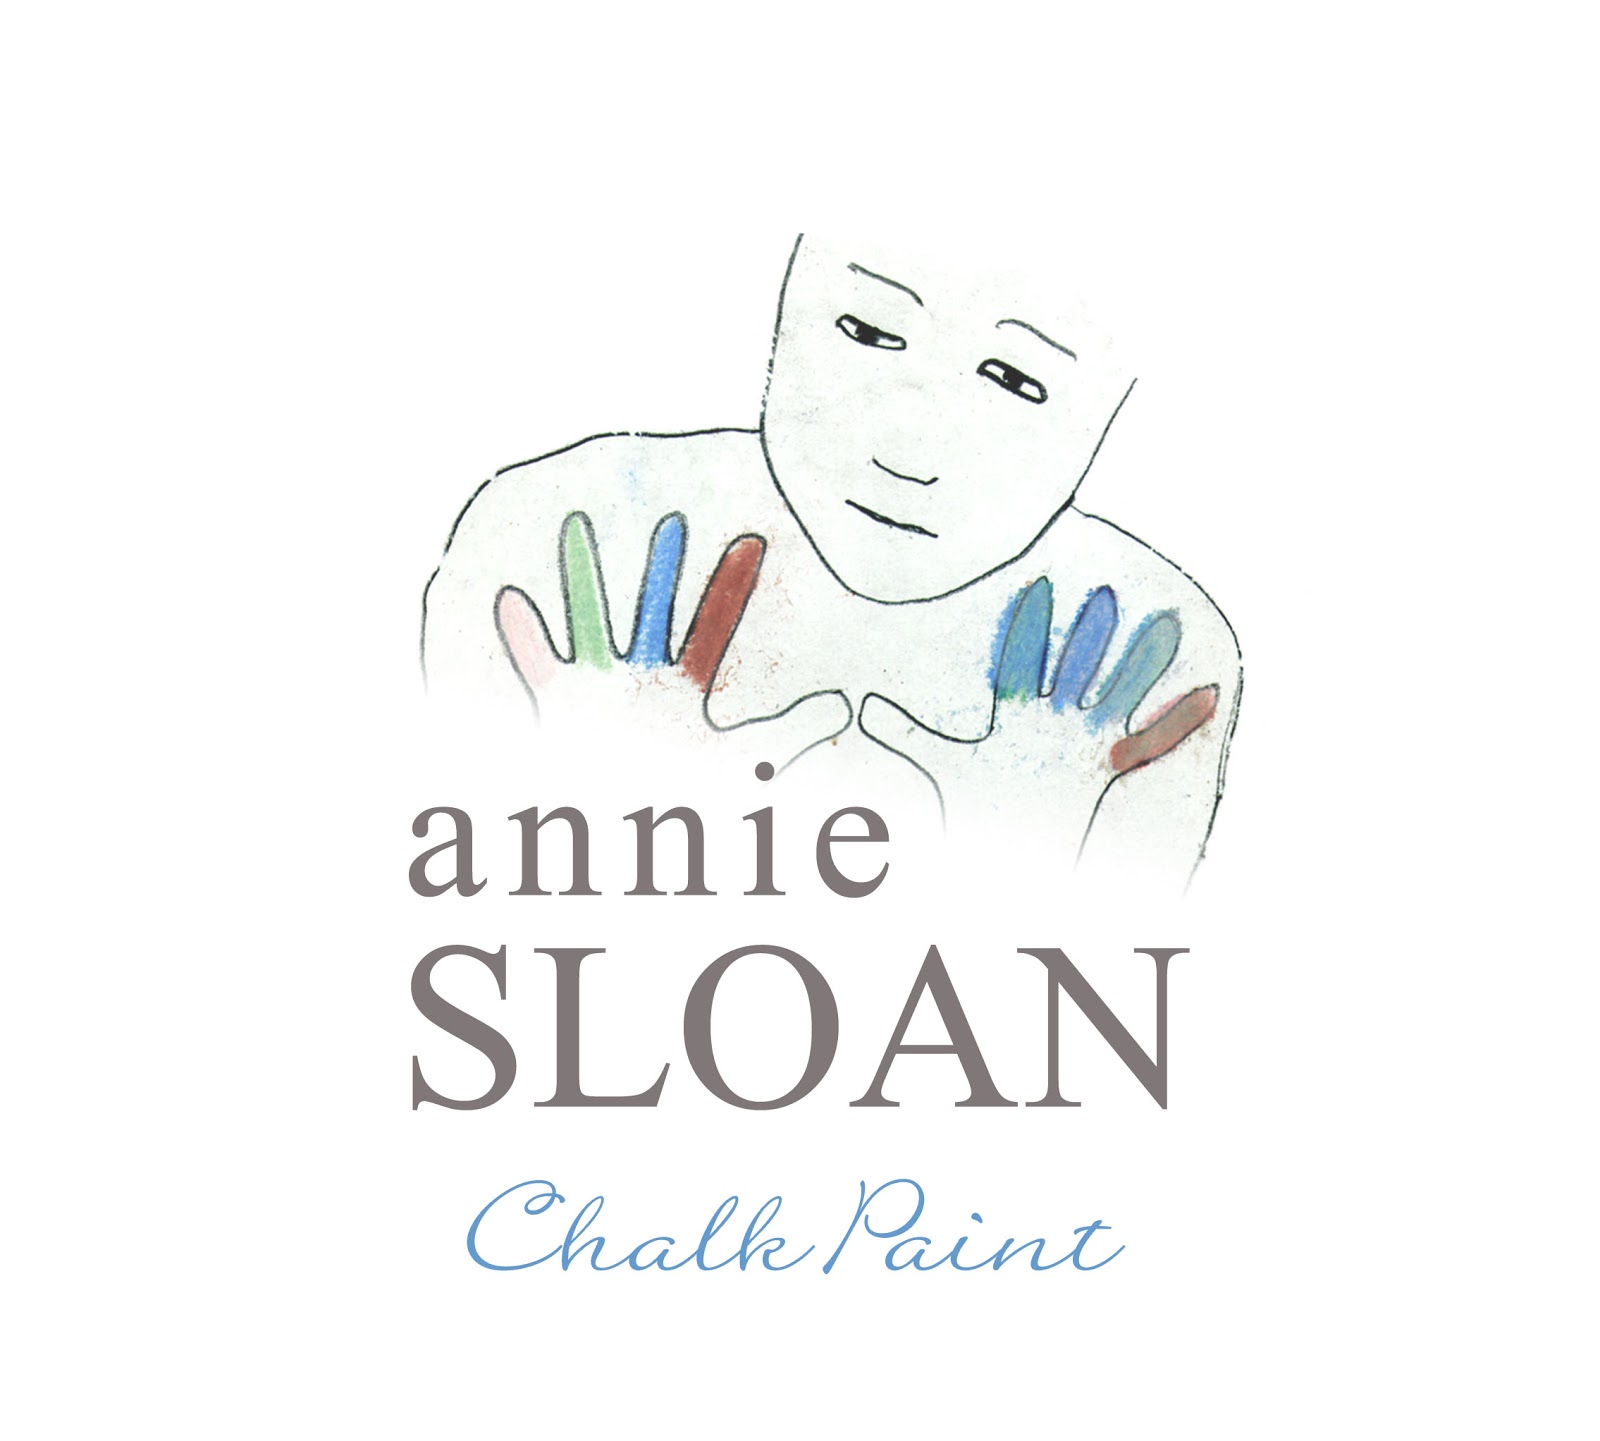 annie sloan logo - photo #4